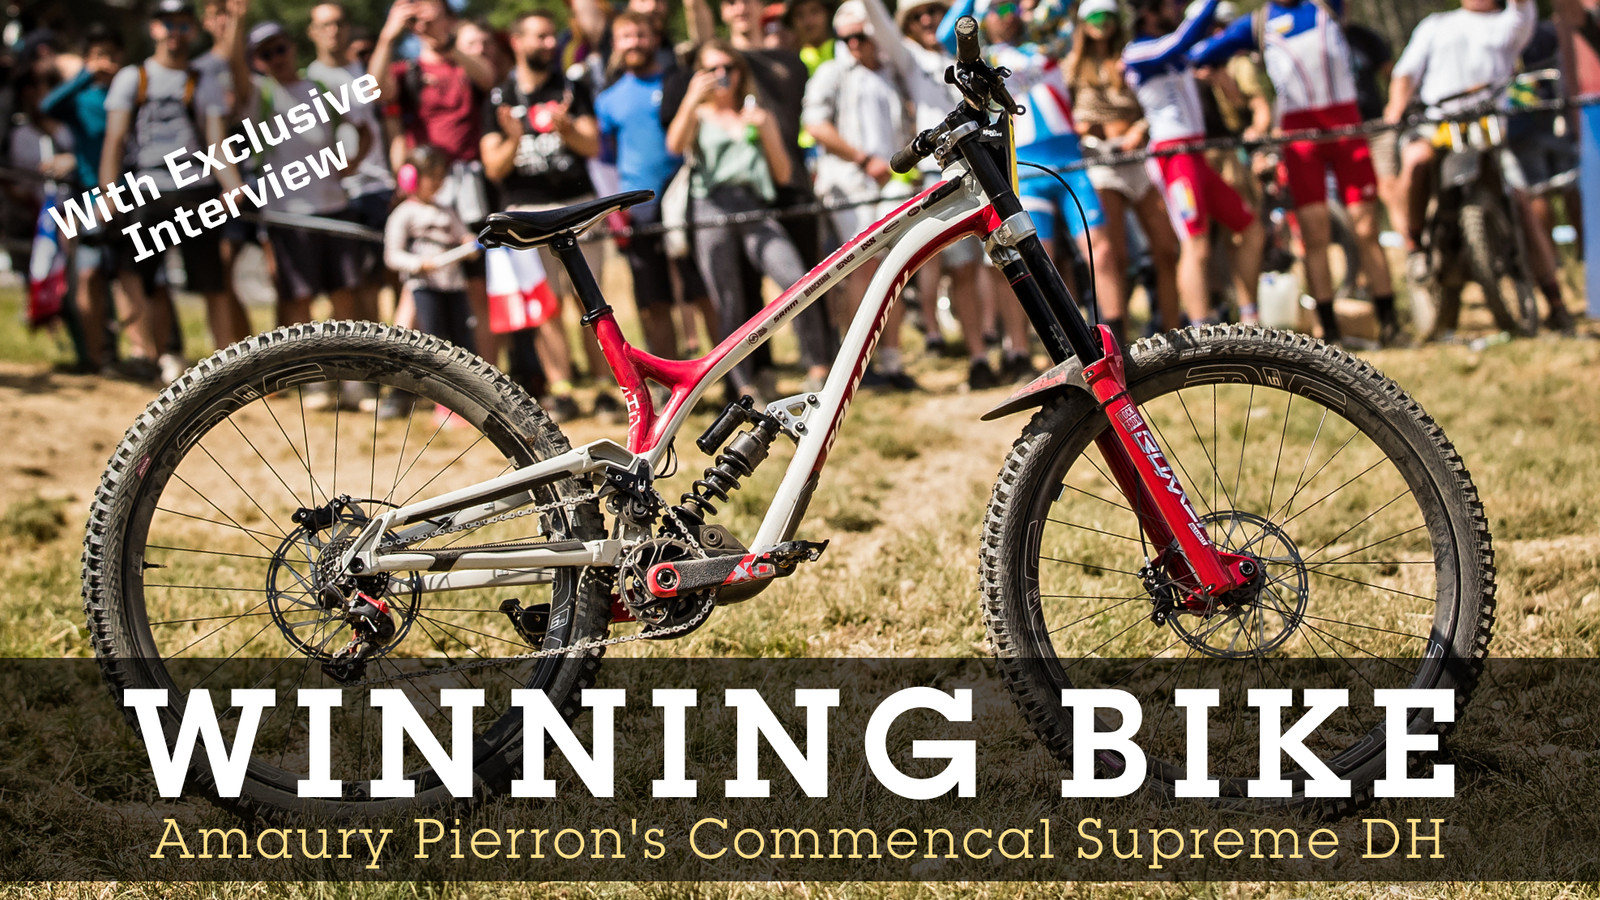 WINNING BIKE - Amaury Pierron's Commencal Supreme DH